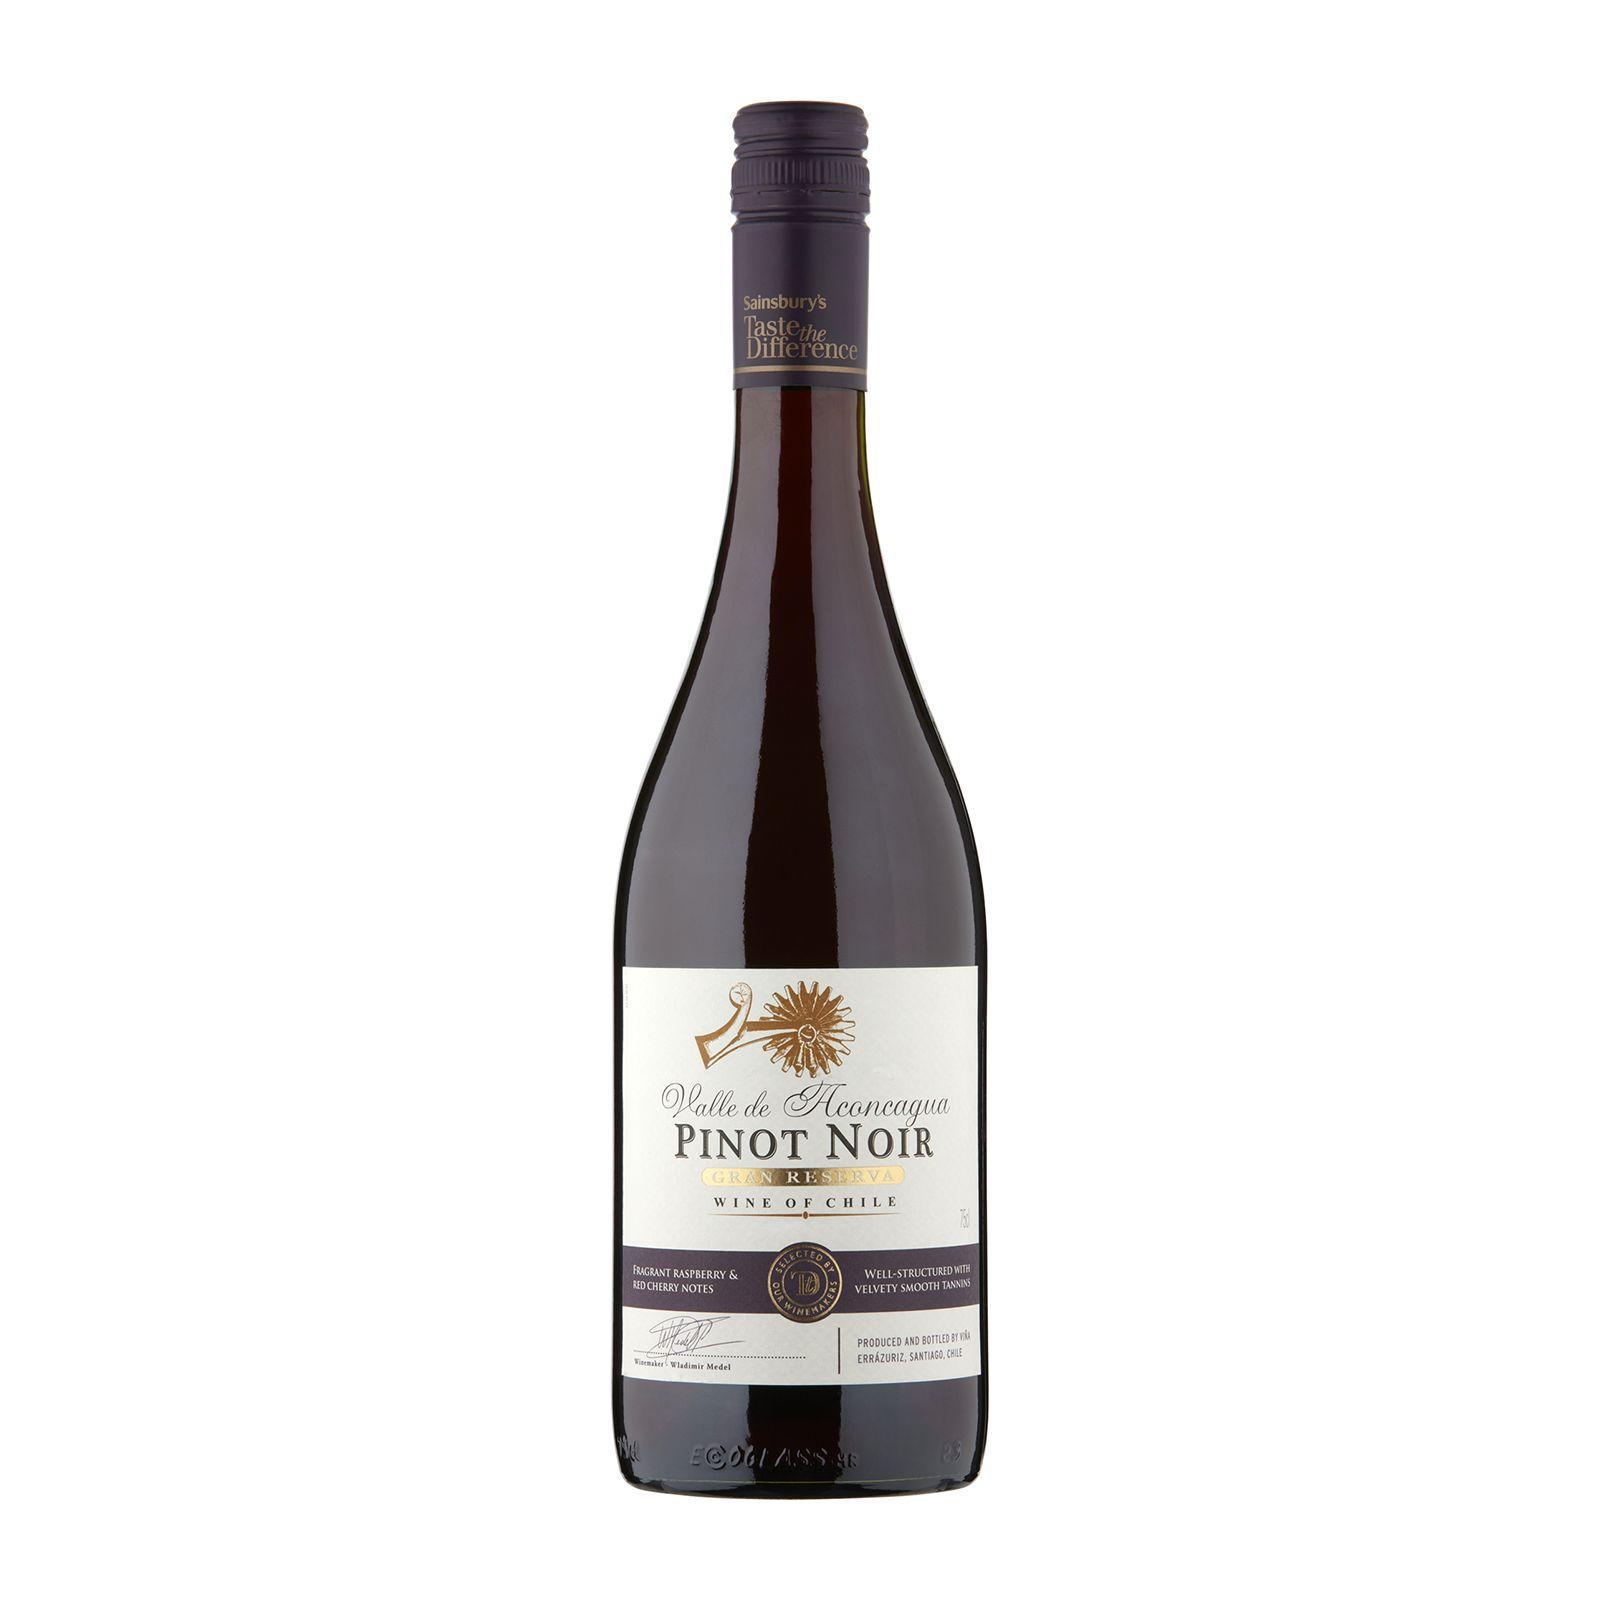 Sainsbury's Taste the Difference Chilean Pinot Noir Red Wine